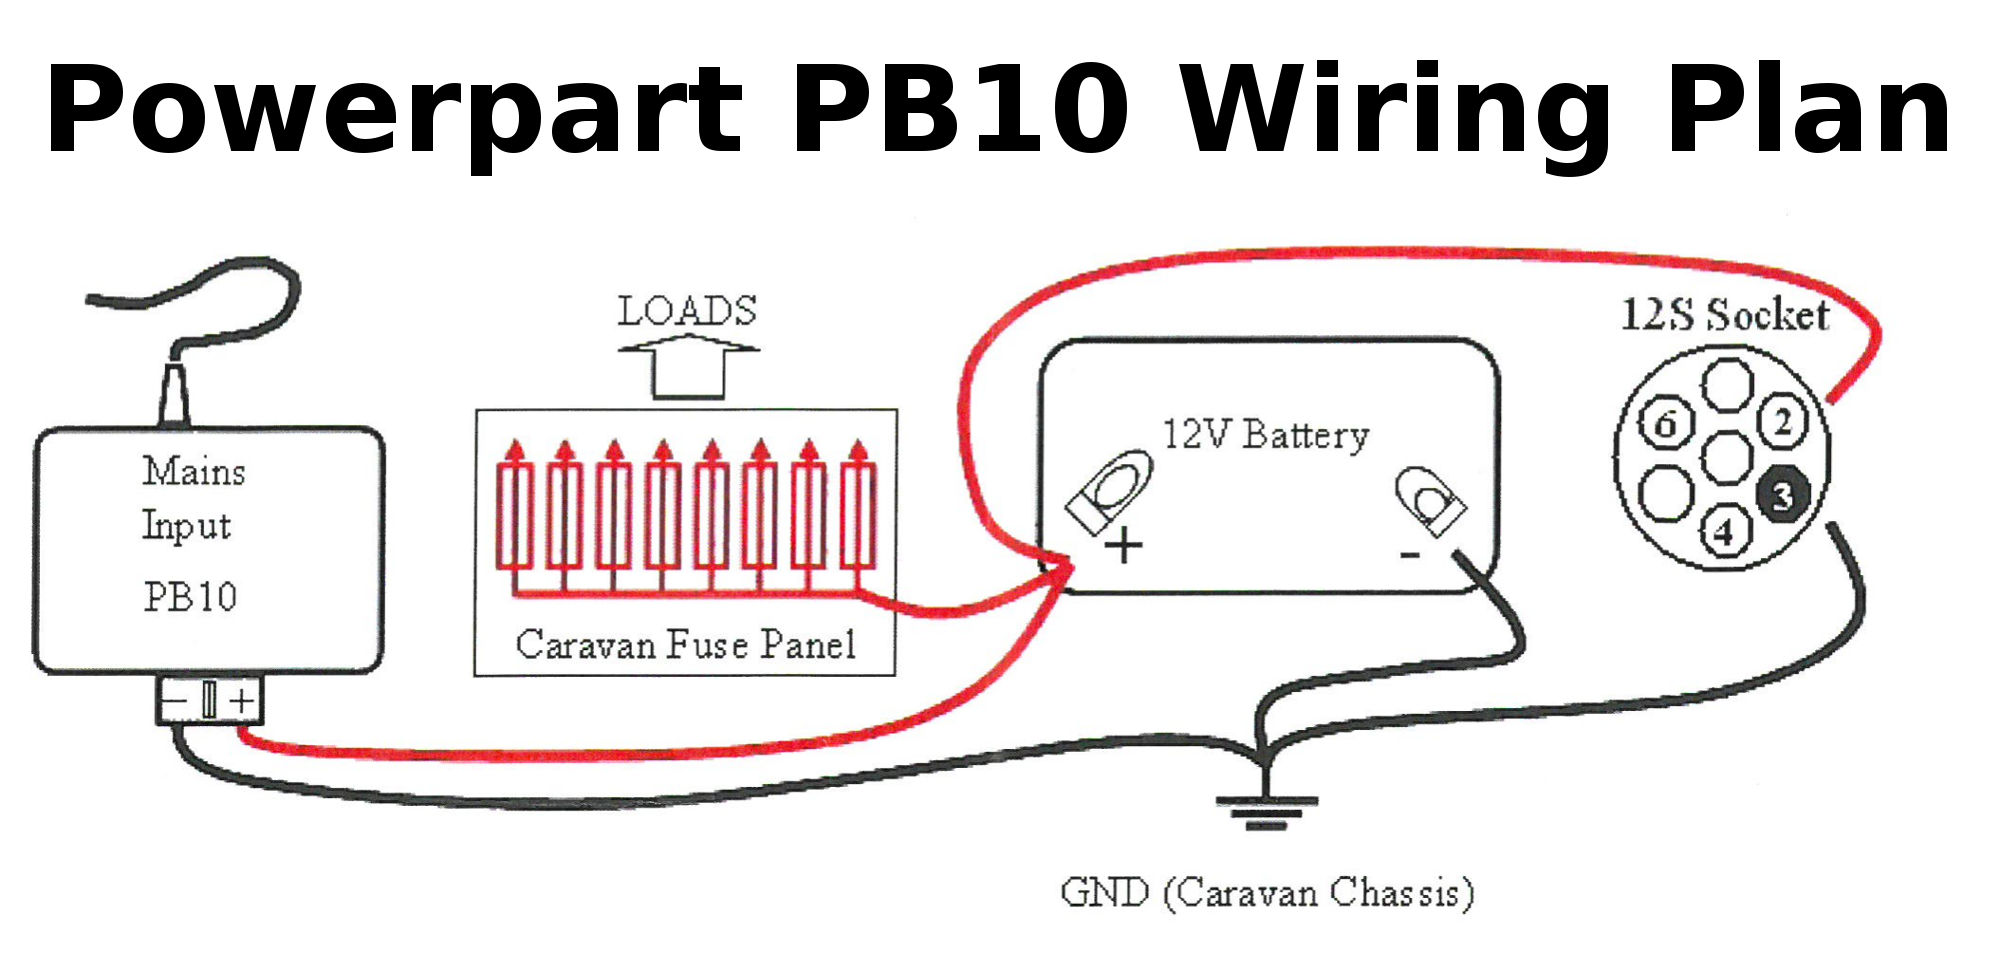 Powerpart PB10 tranformer for caravans, motorhome and boats PB10 Wiring  Plan can include leisure battery but is not required